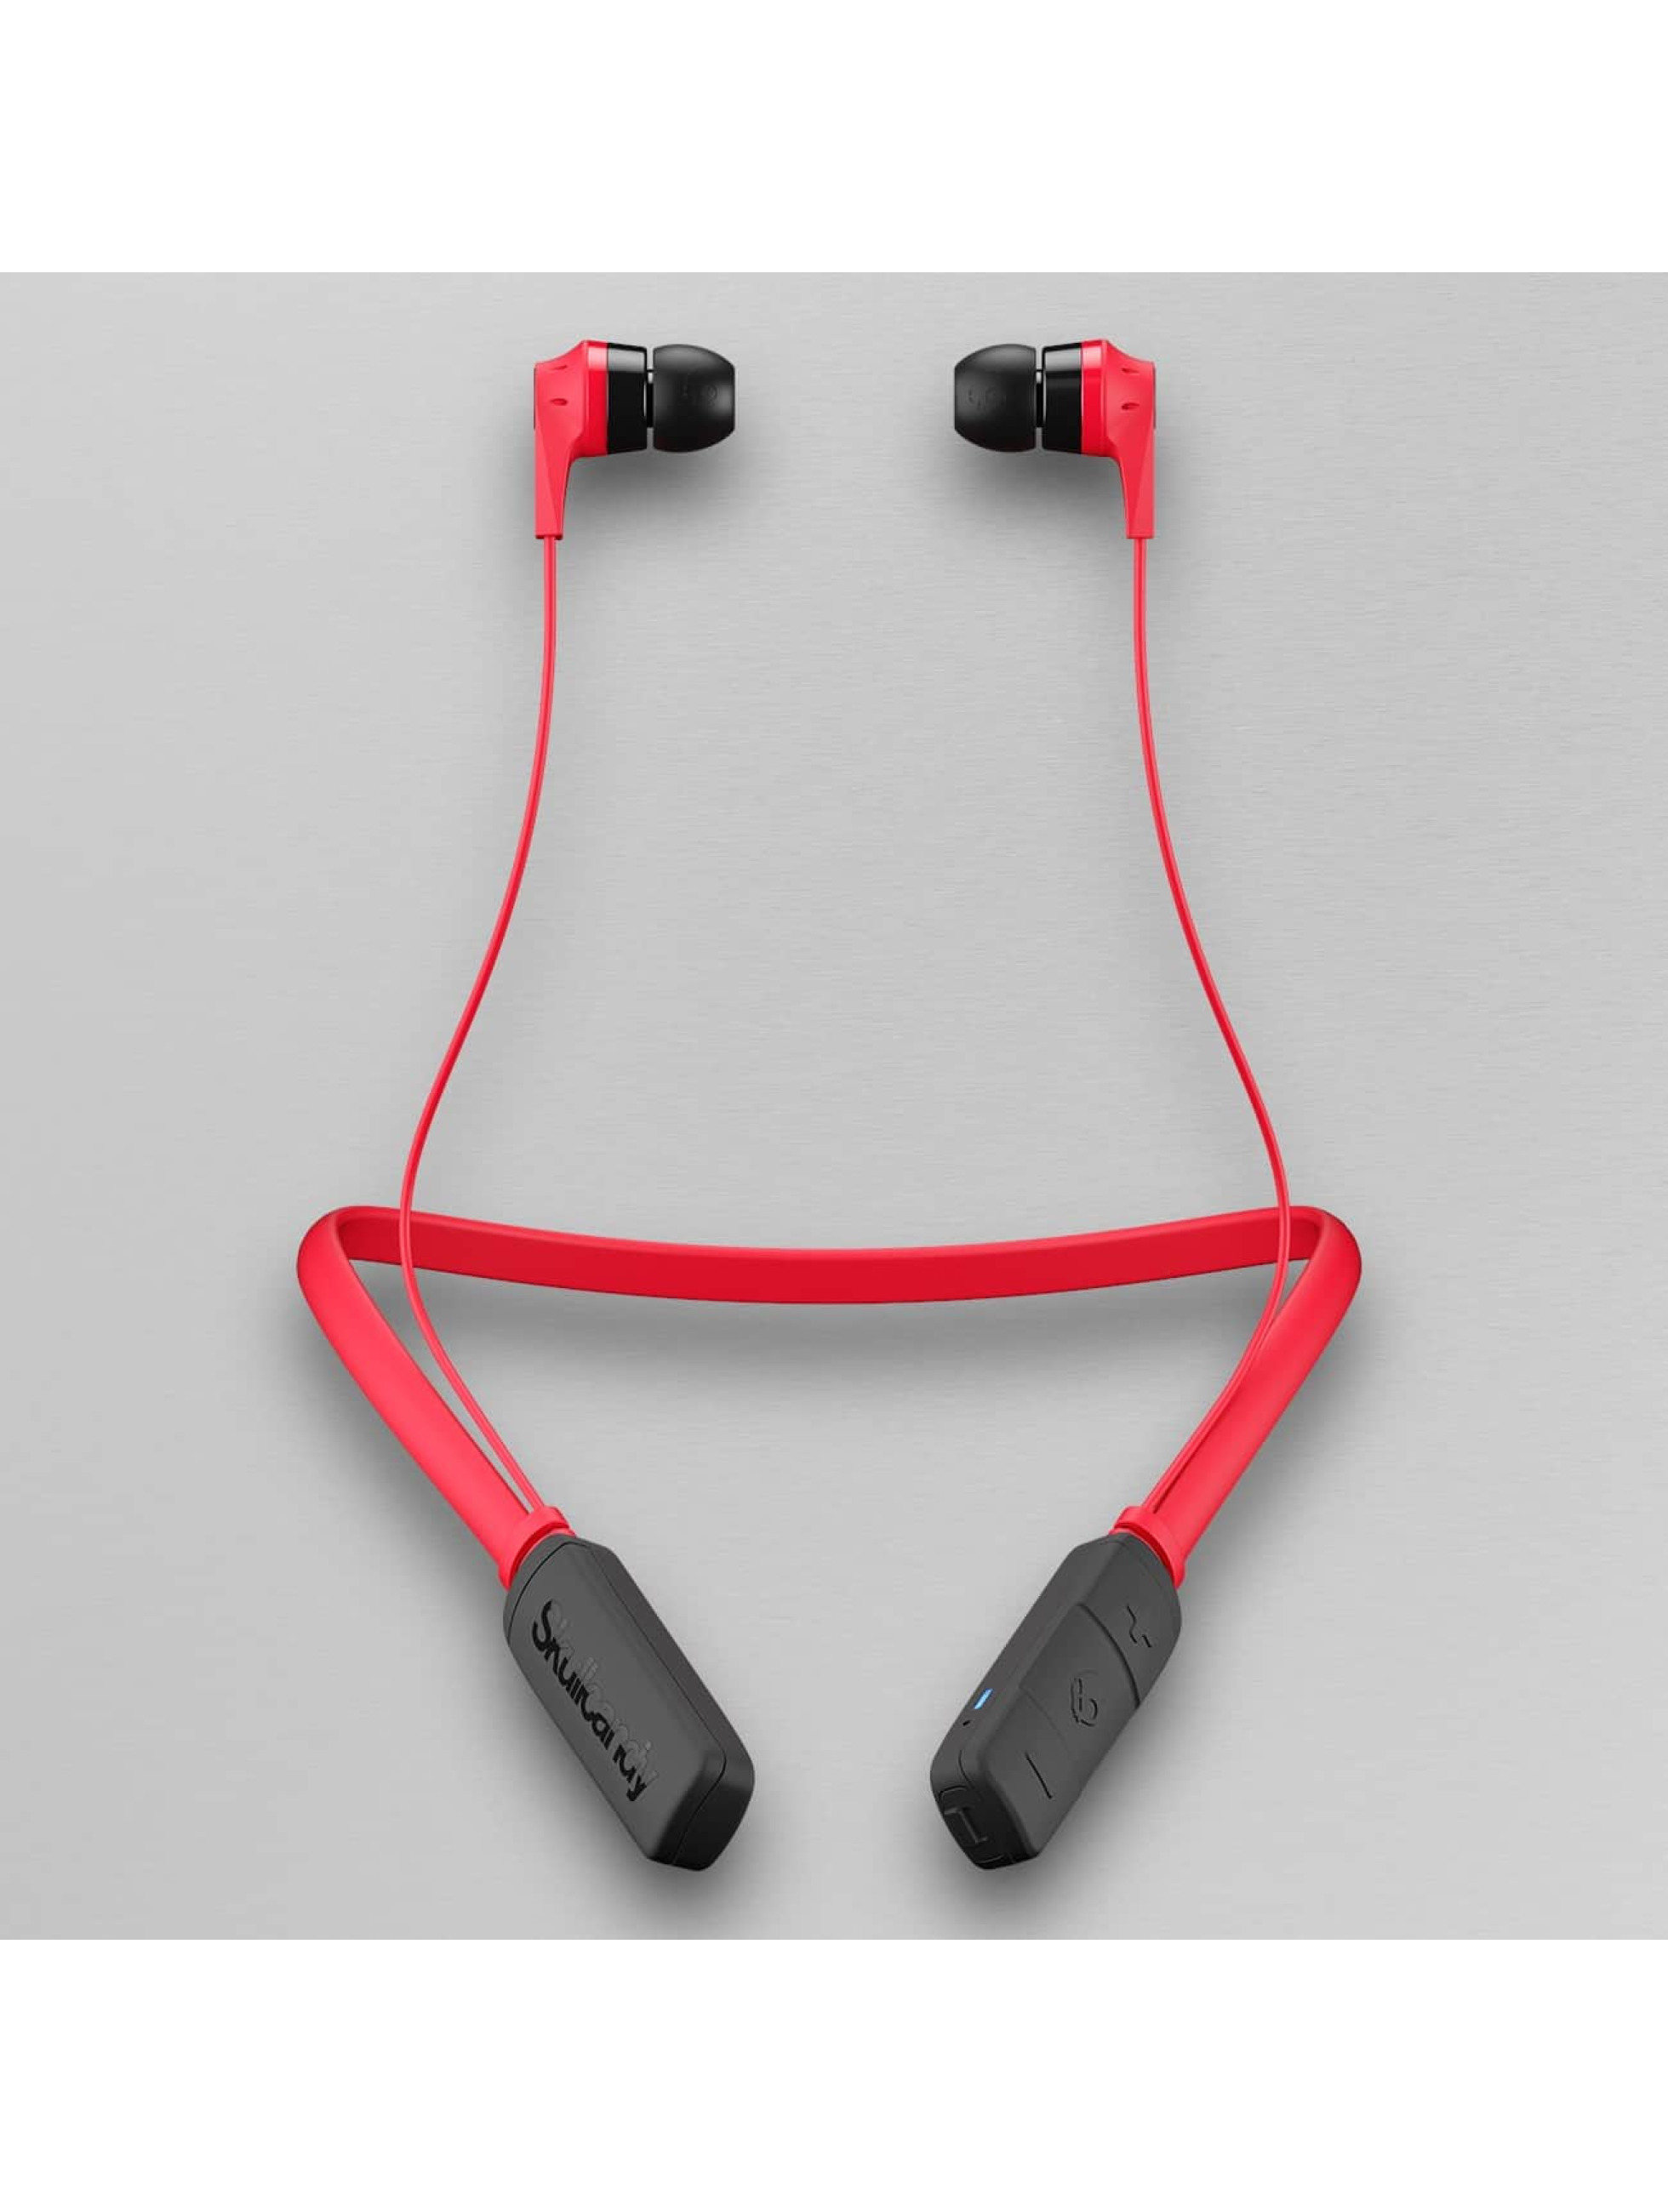 Skullcandy Headphone Inked 2.0 Wireless red